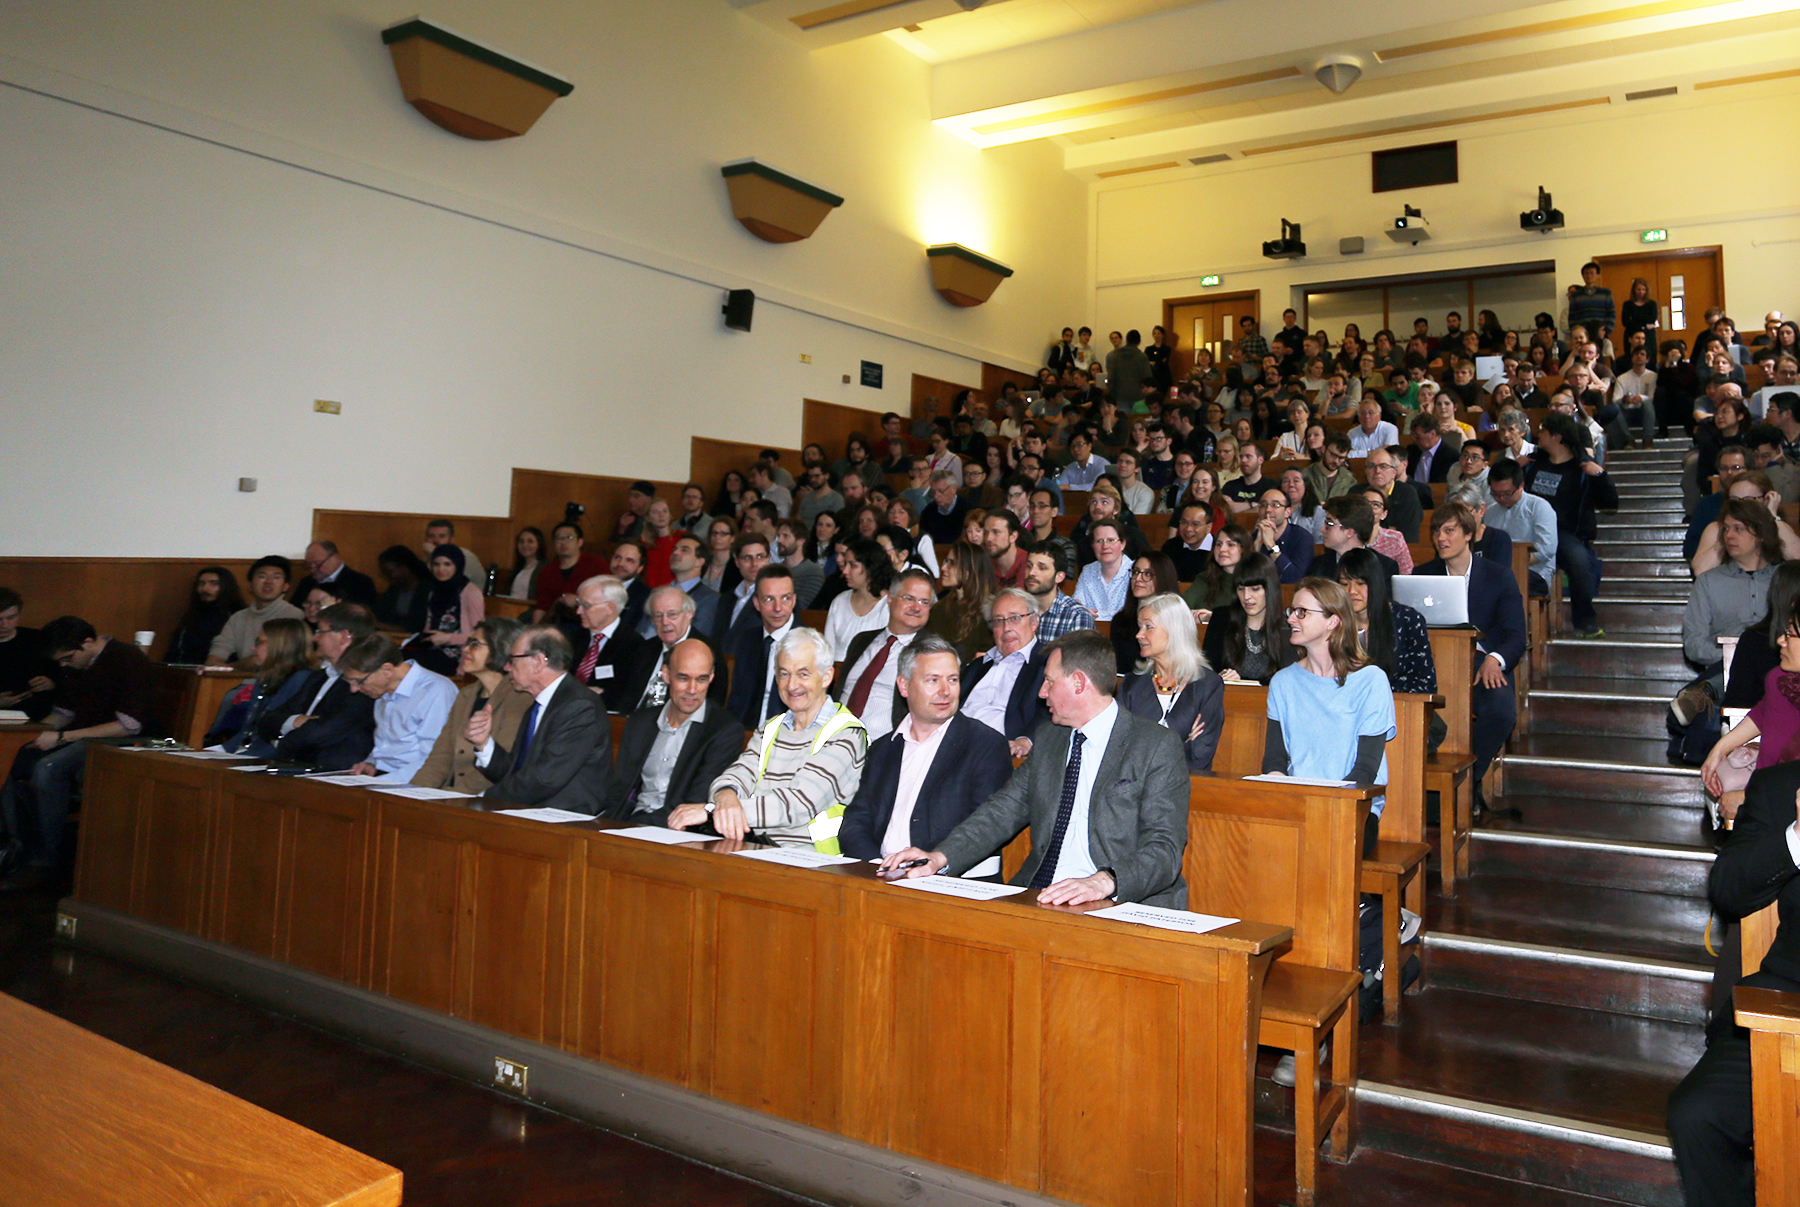 Large lecture theatre 1.jpg